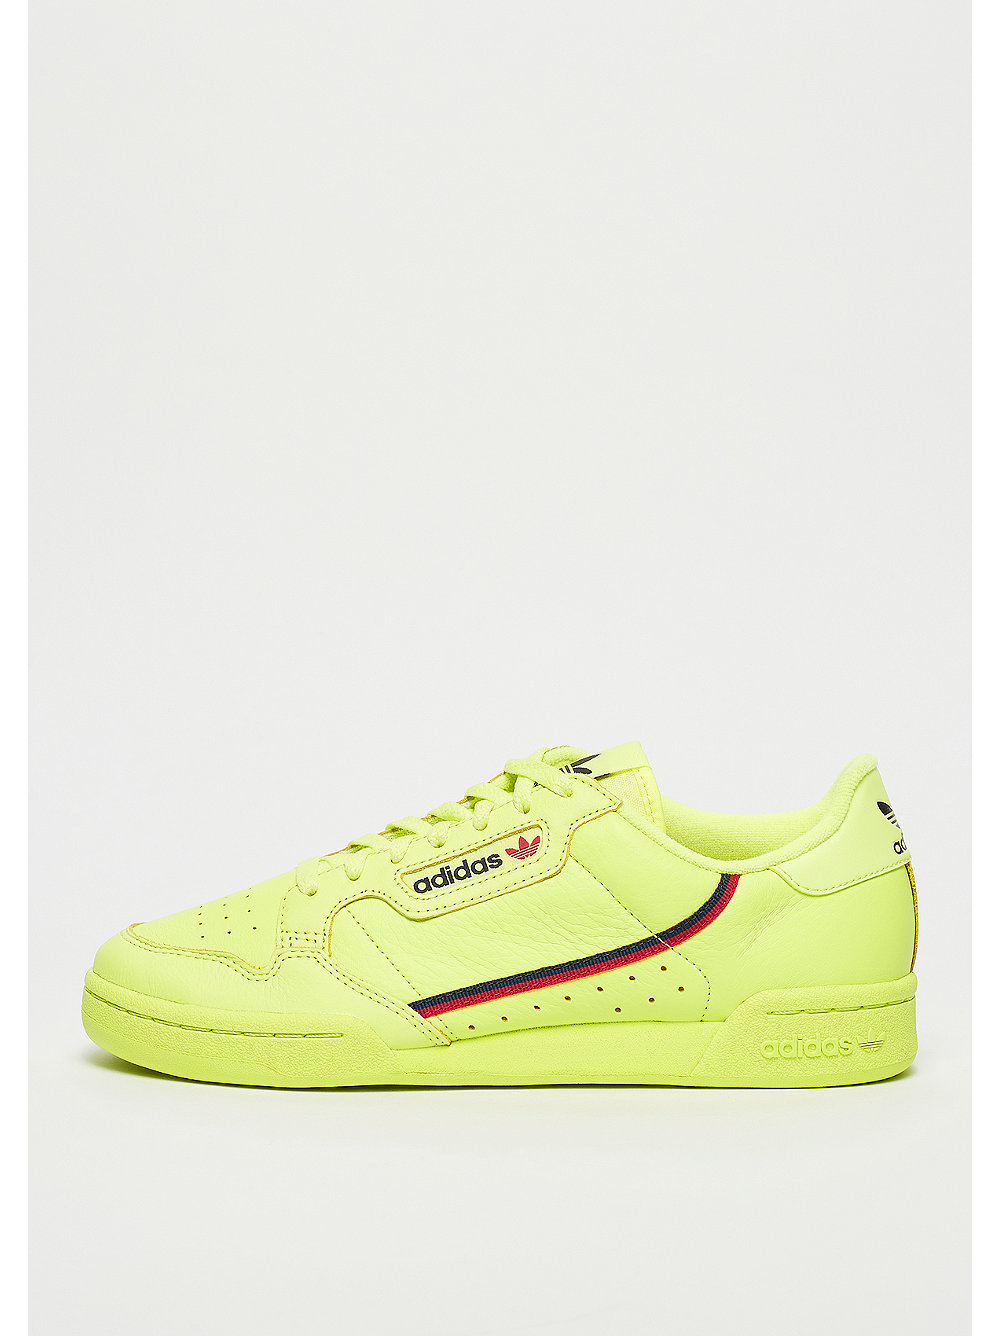 adidas Continental 80 semi frozen yellow/scarle...